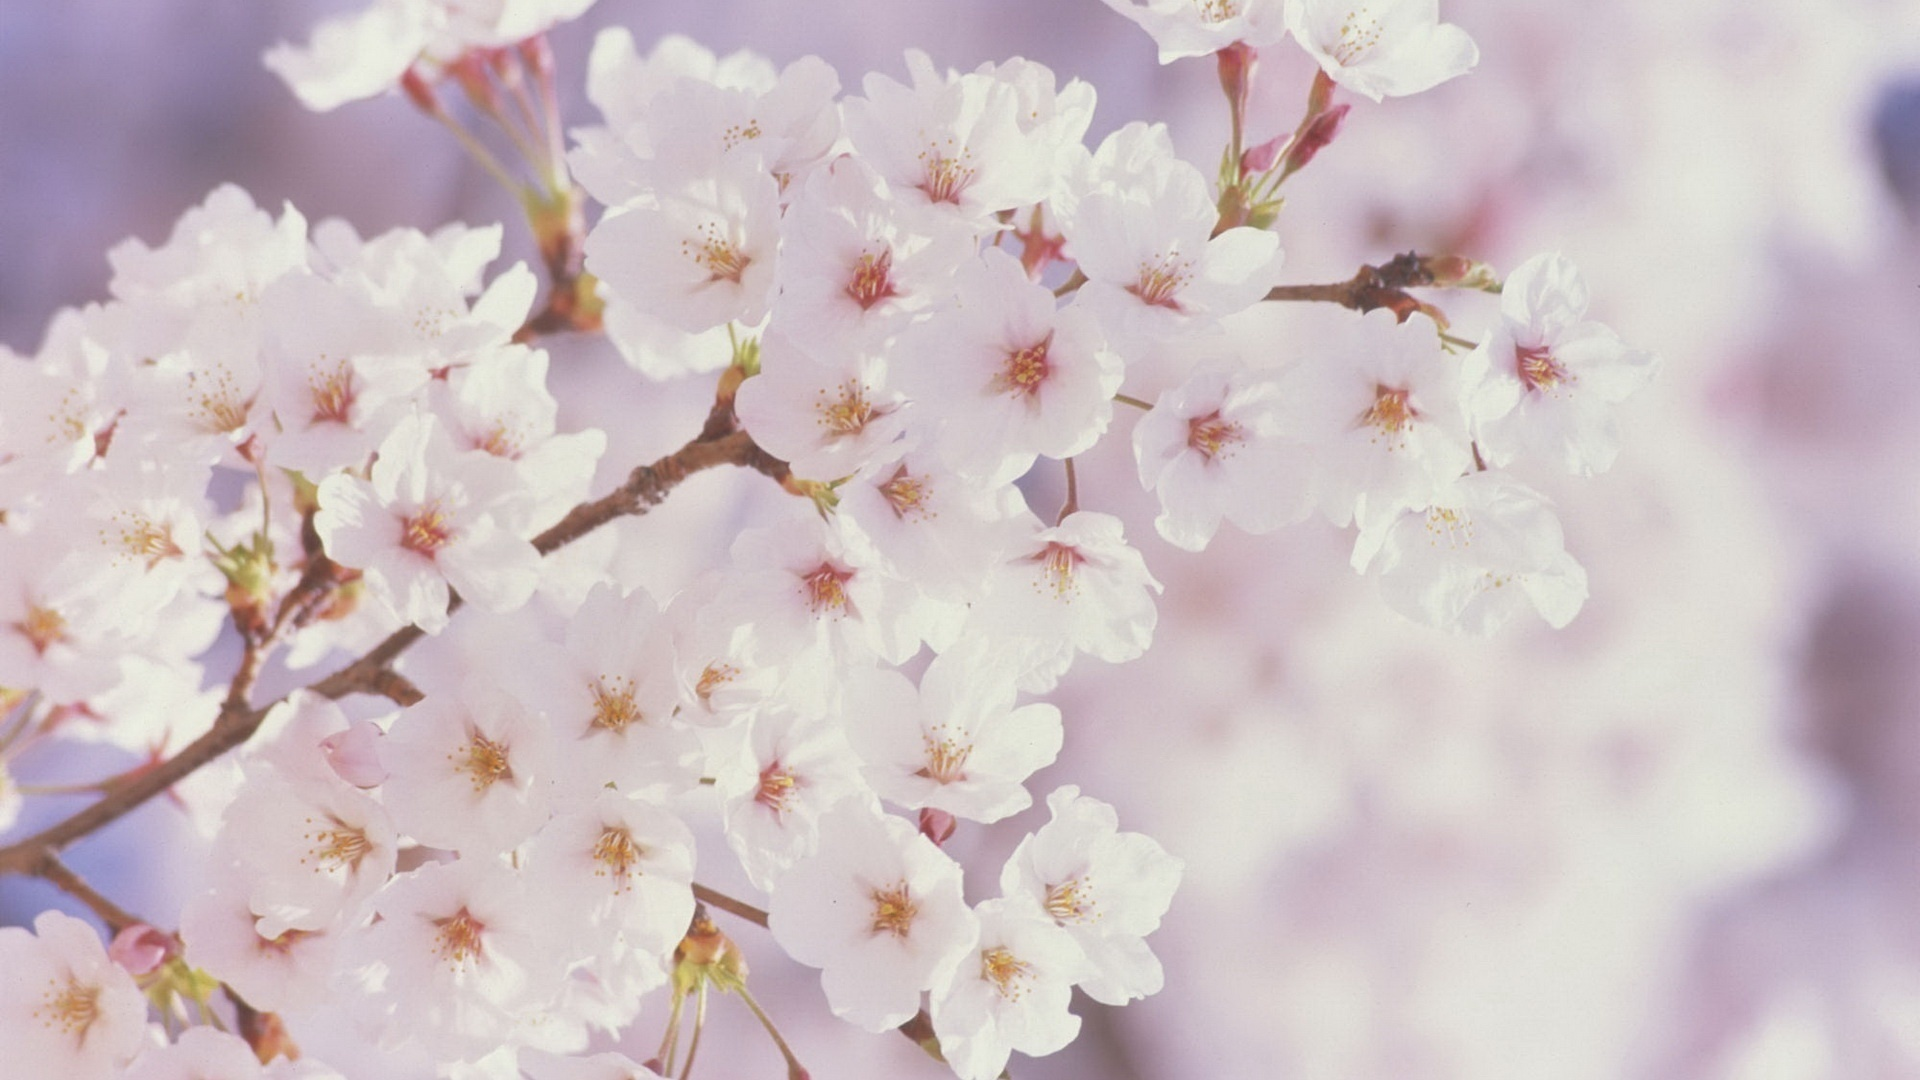 Spring Images Spring Flowers Hd Wallpaper And Background Photos